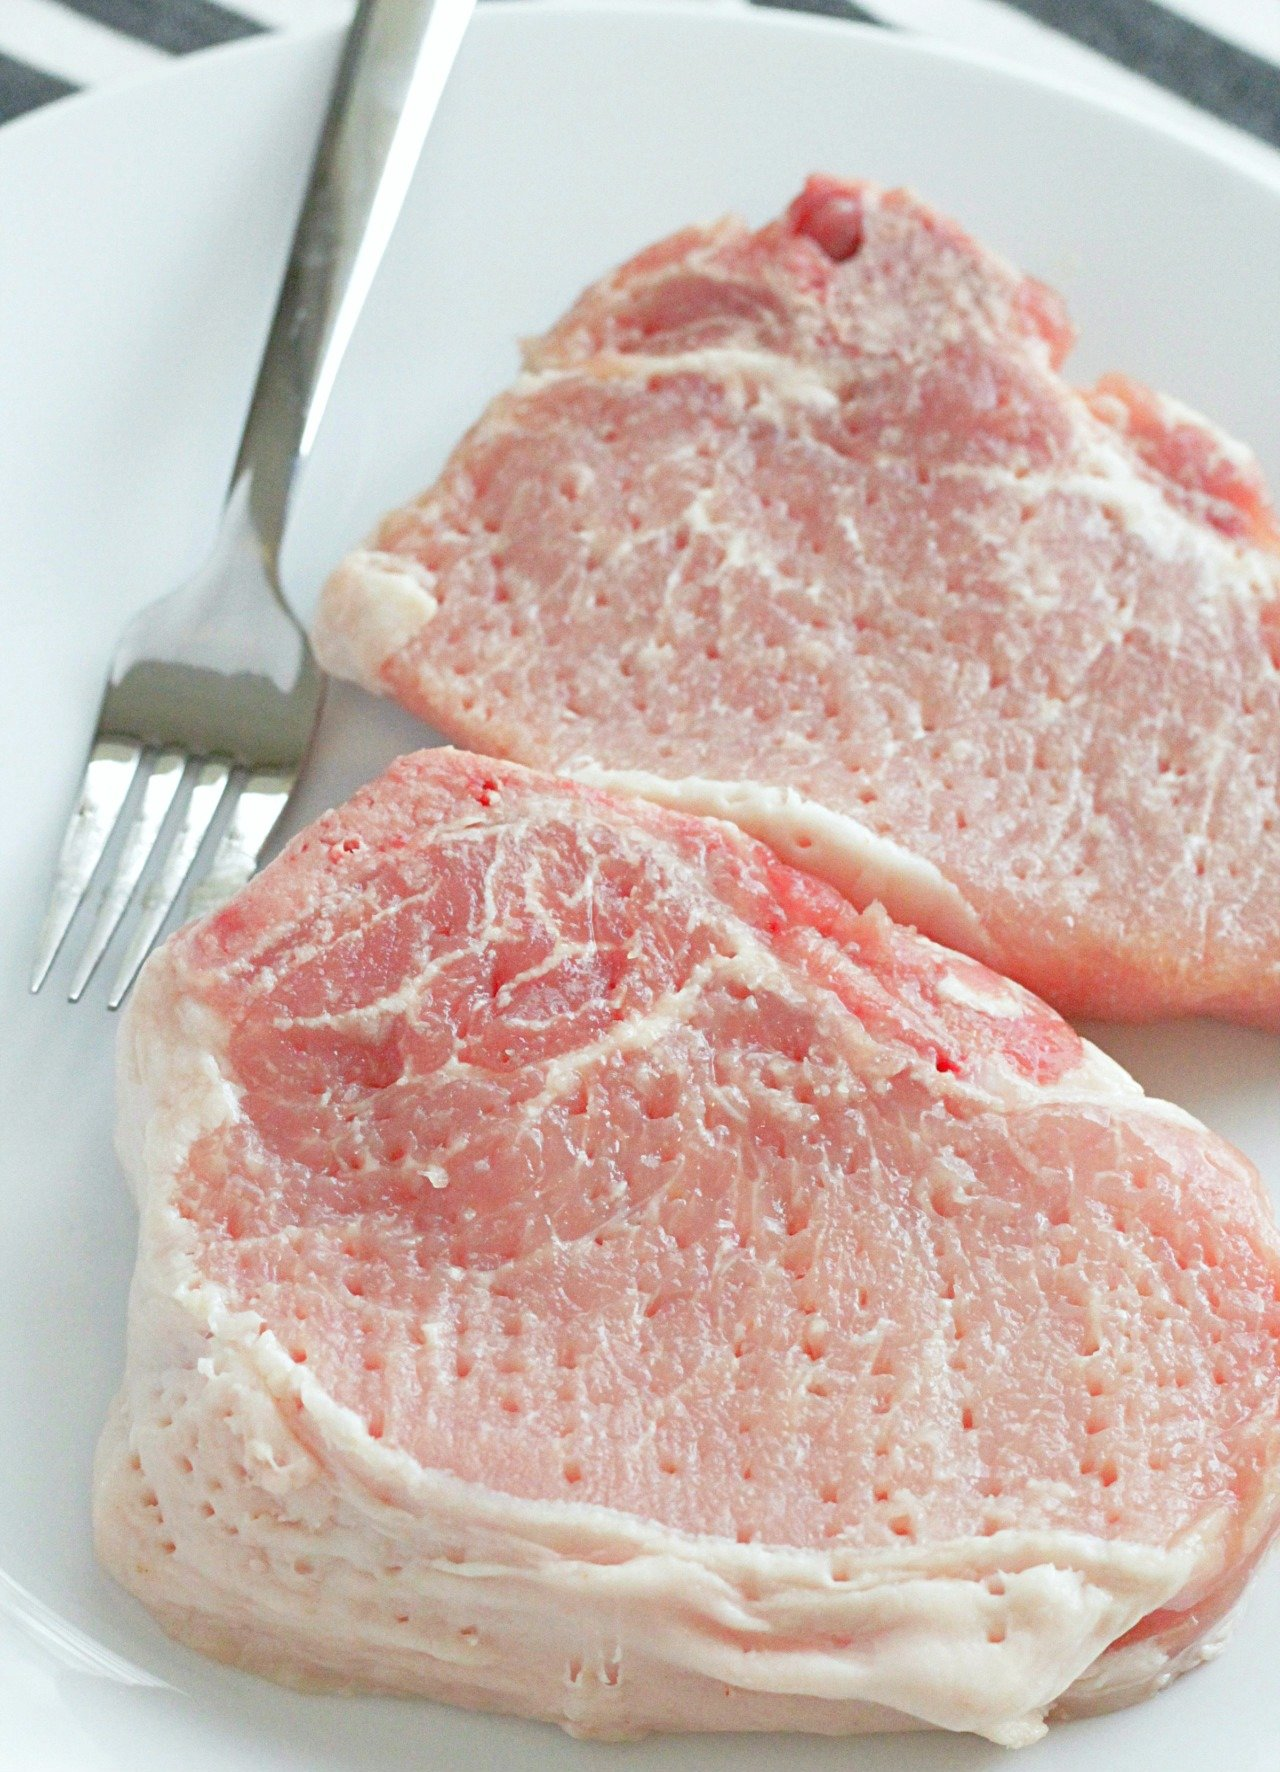 raw pork chops on a plate